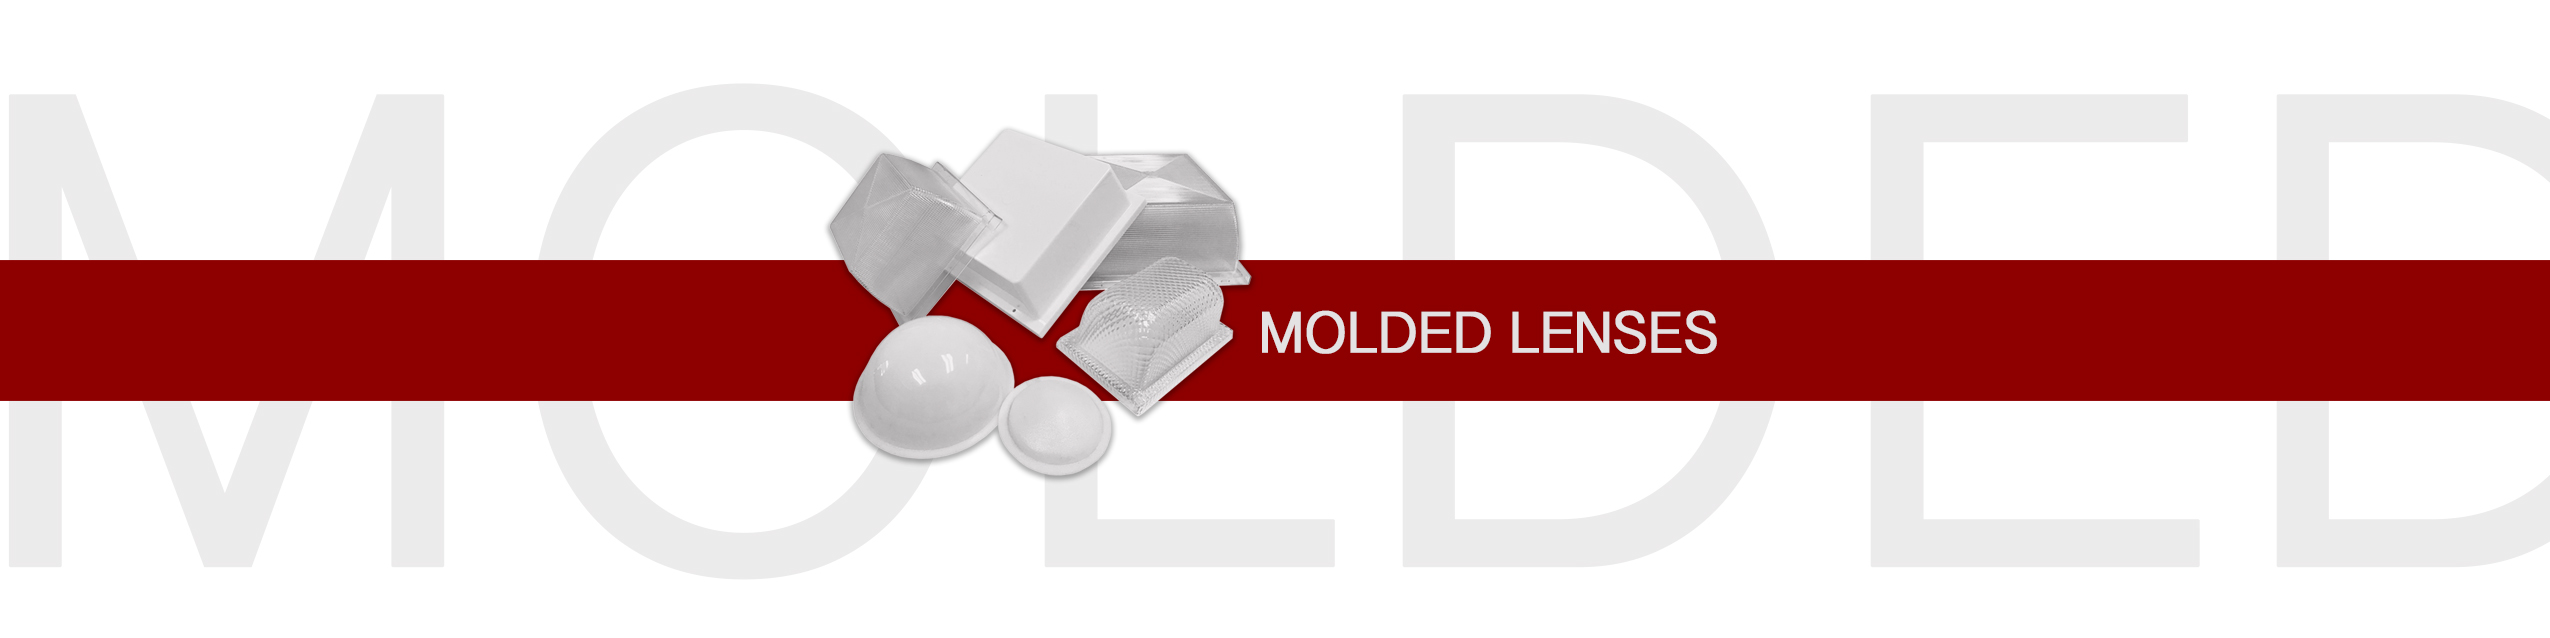 MOLDED LENSES BANNER